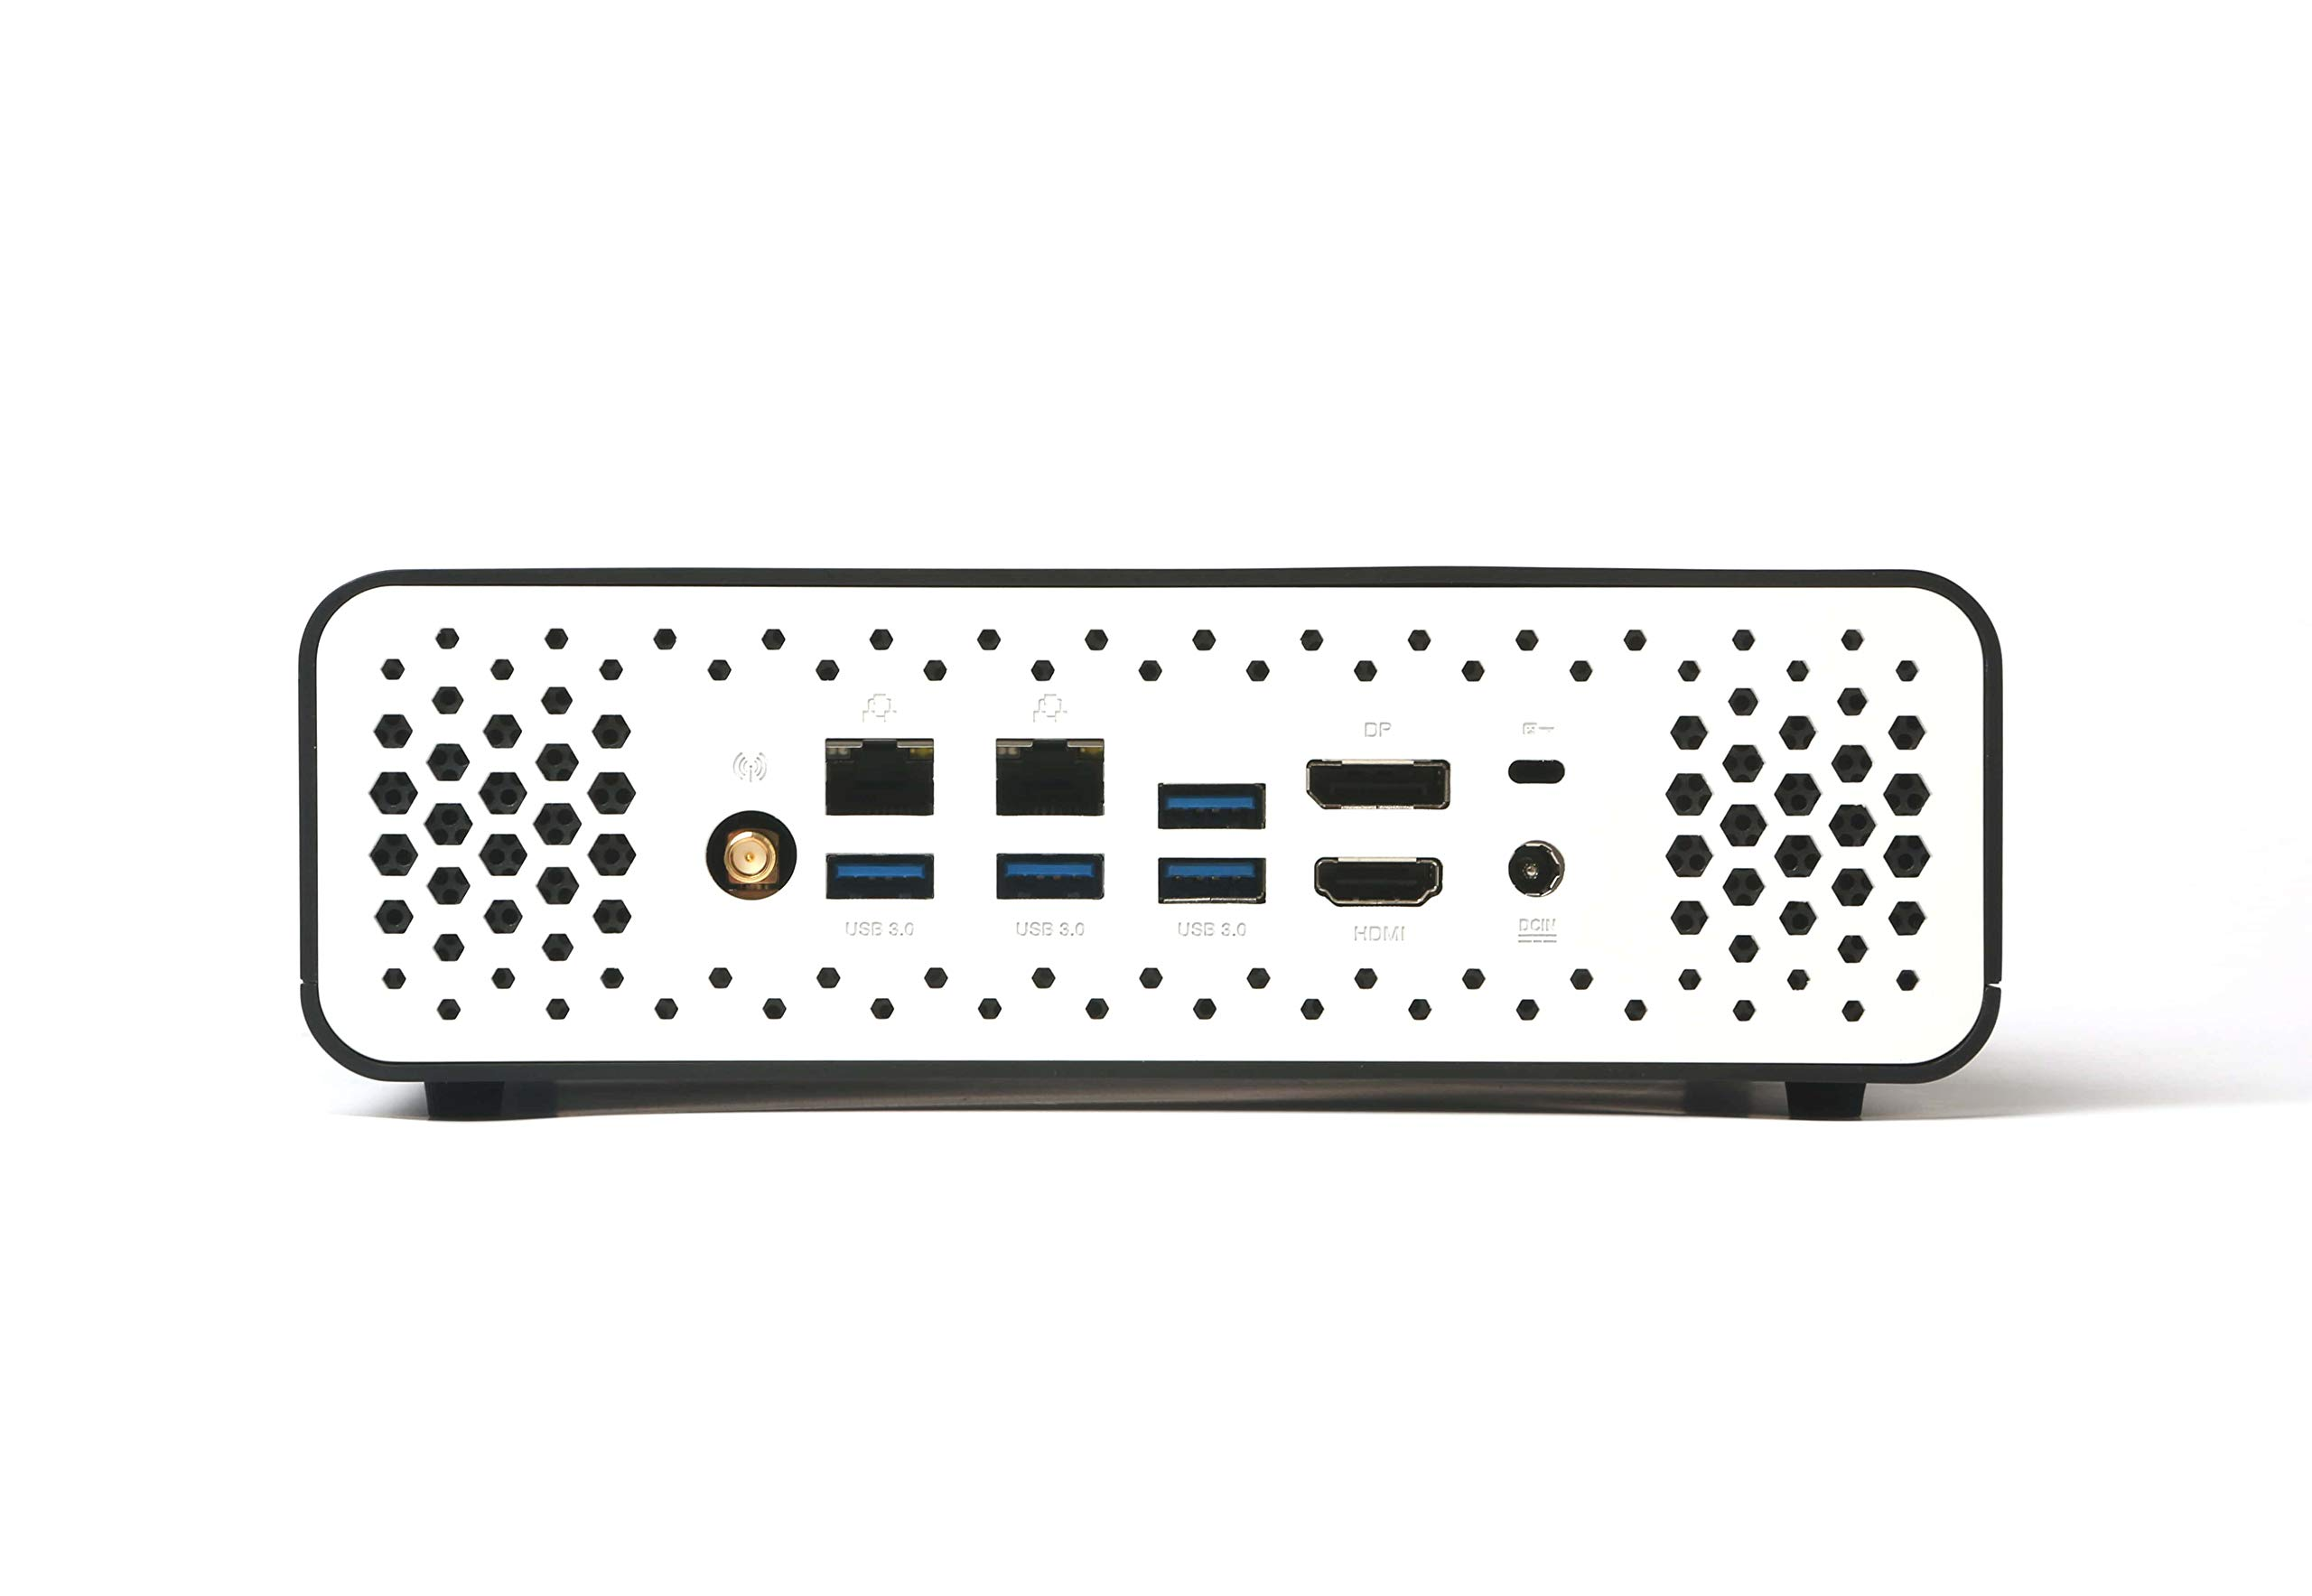 ZOTAC ZBOX CI620 Nano Plus Silent Mini PC 8th Gen Intel Core i3-8130U UHD 620 4GB DDR4/120GB SSD/No OS (ZBOX-CI620NANO-P-U) by ZOTAC (Image #8)